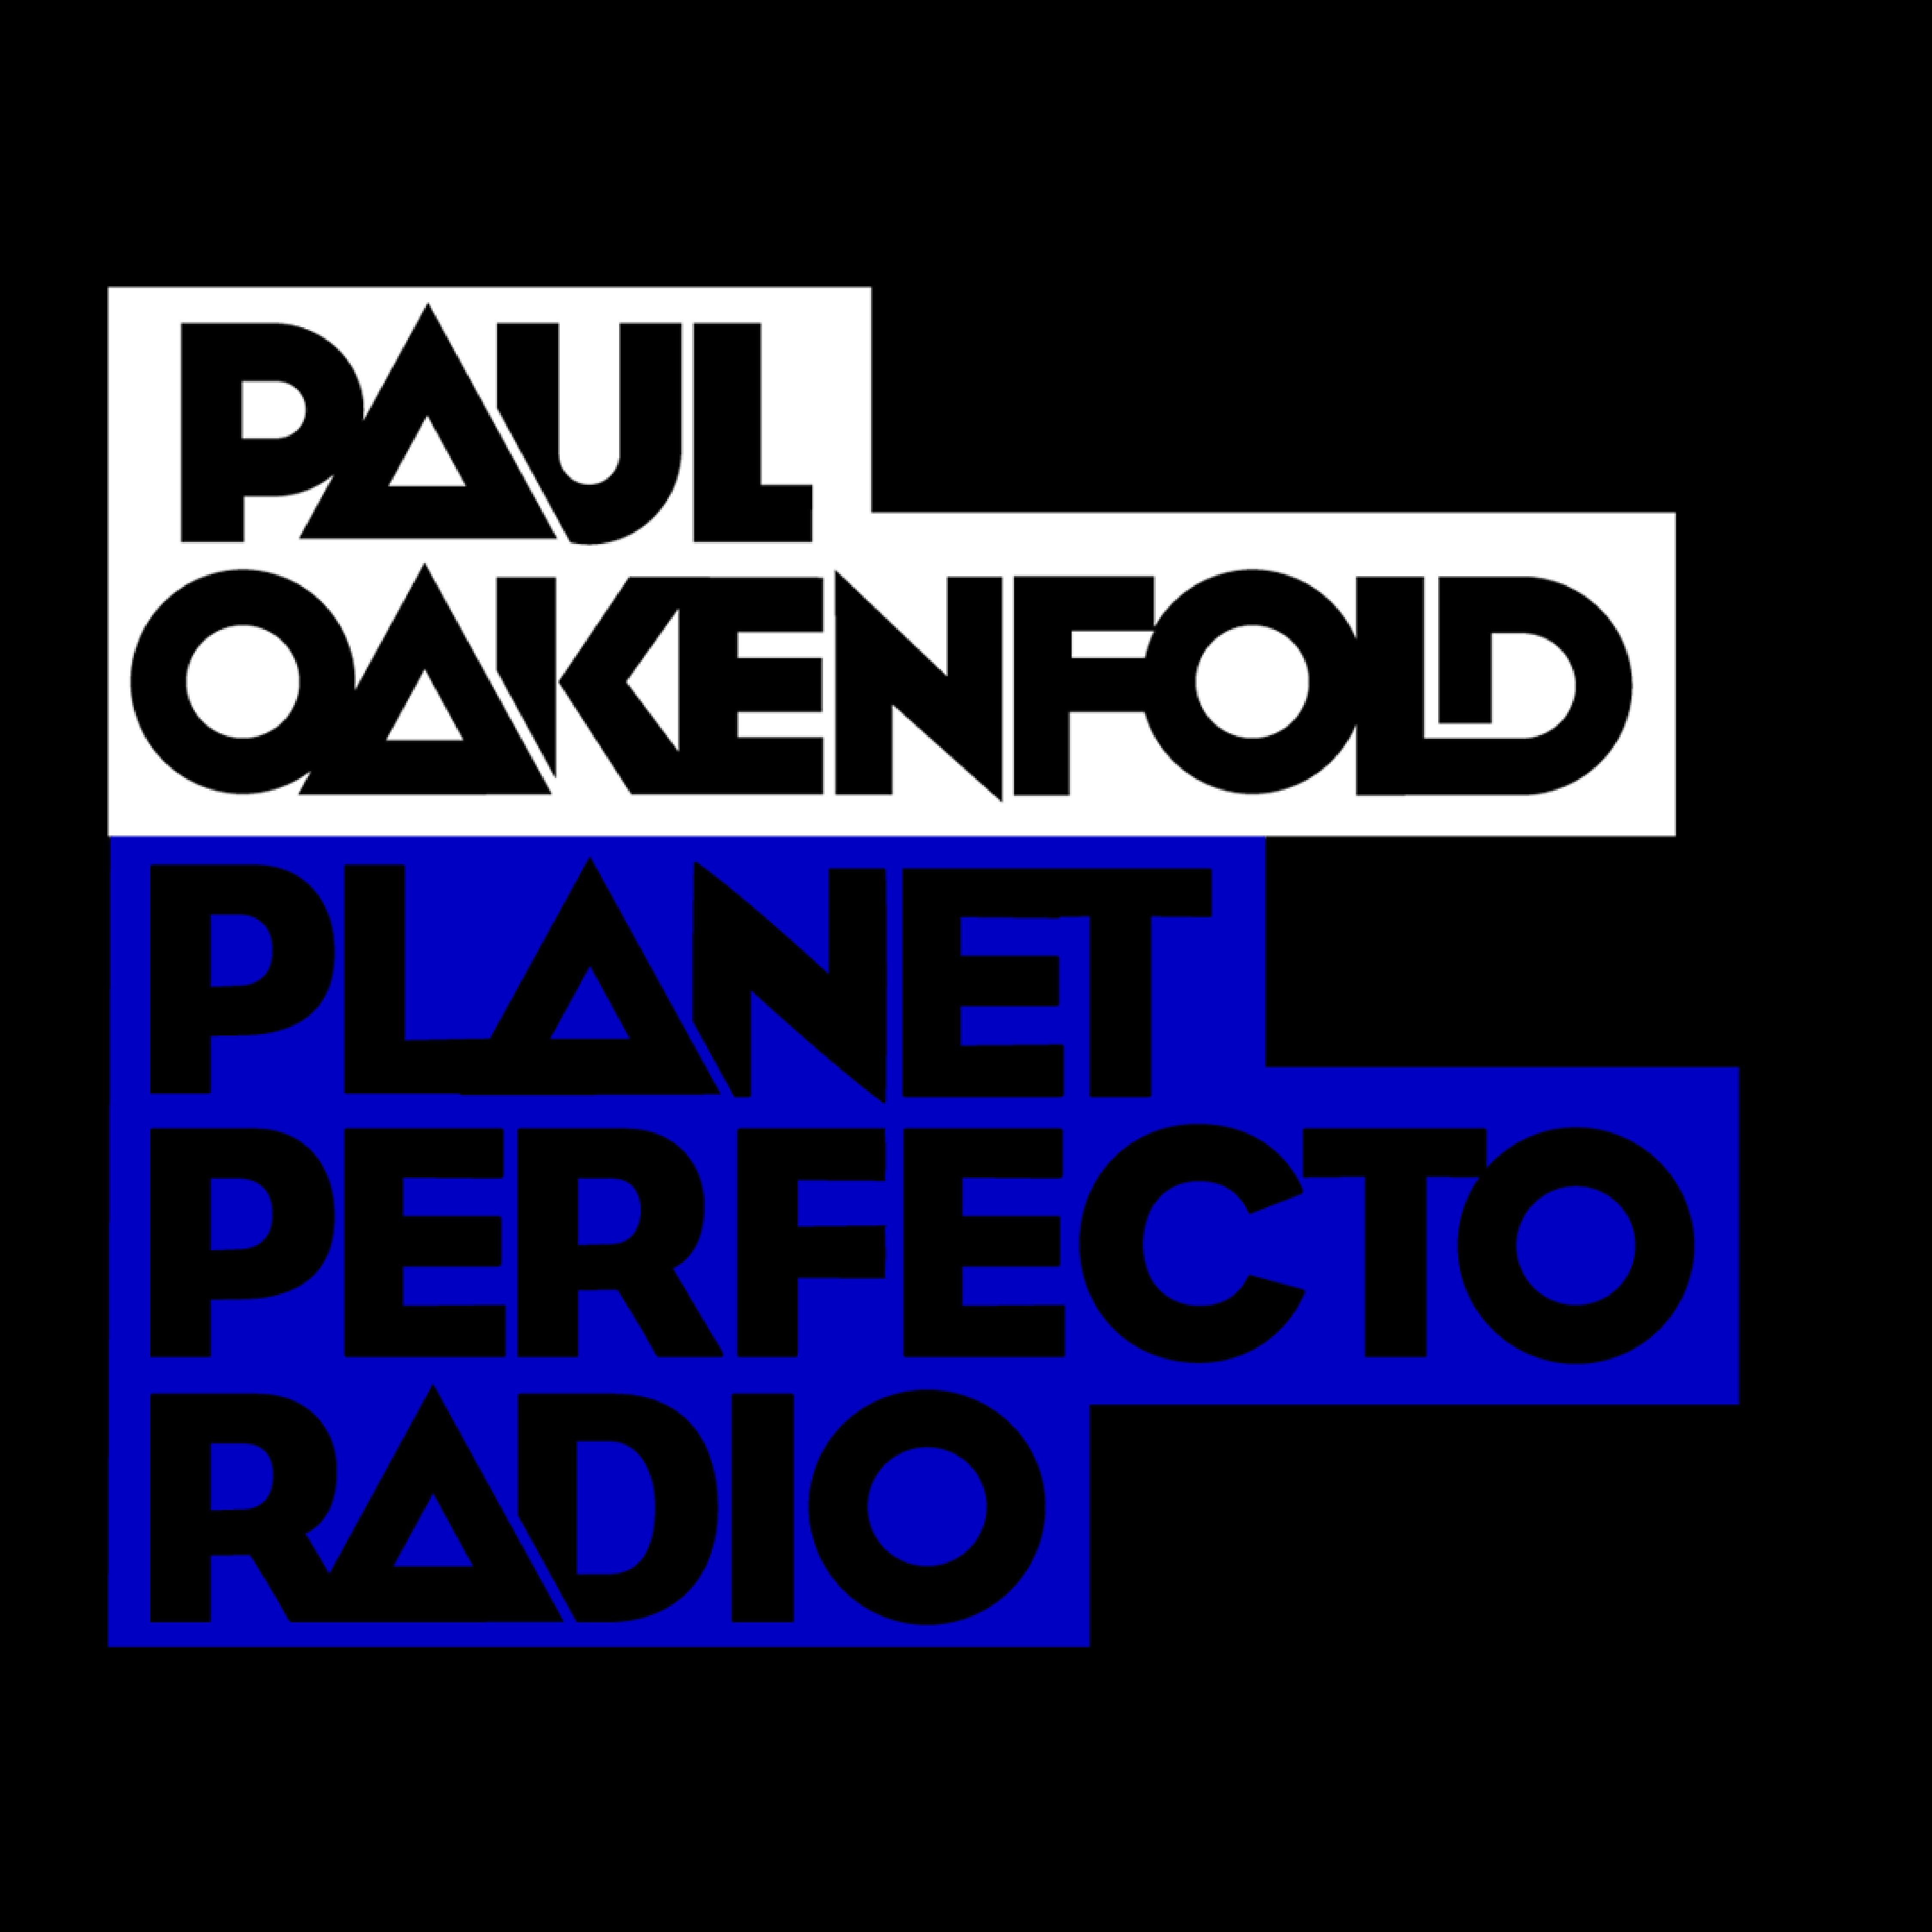 Planet Perfecto Podcast 557 ft. Paul Oakenfold